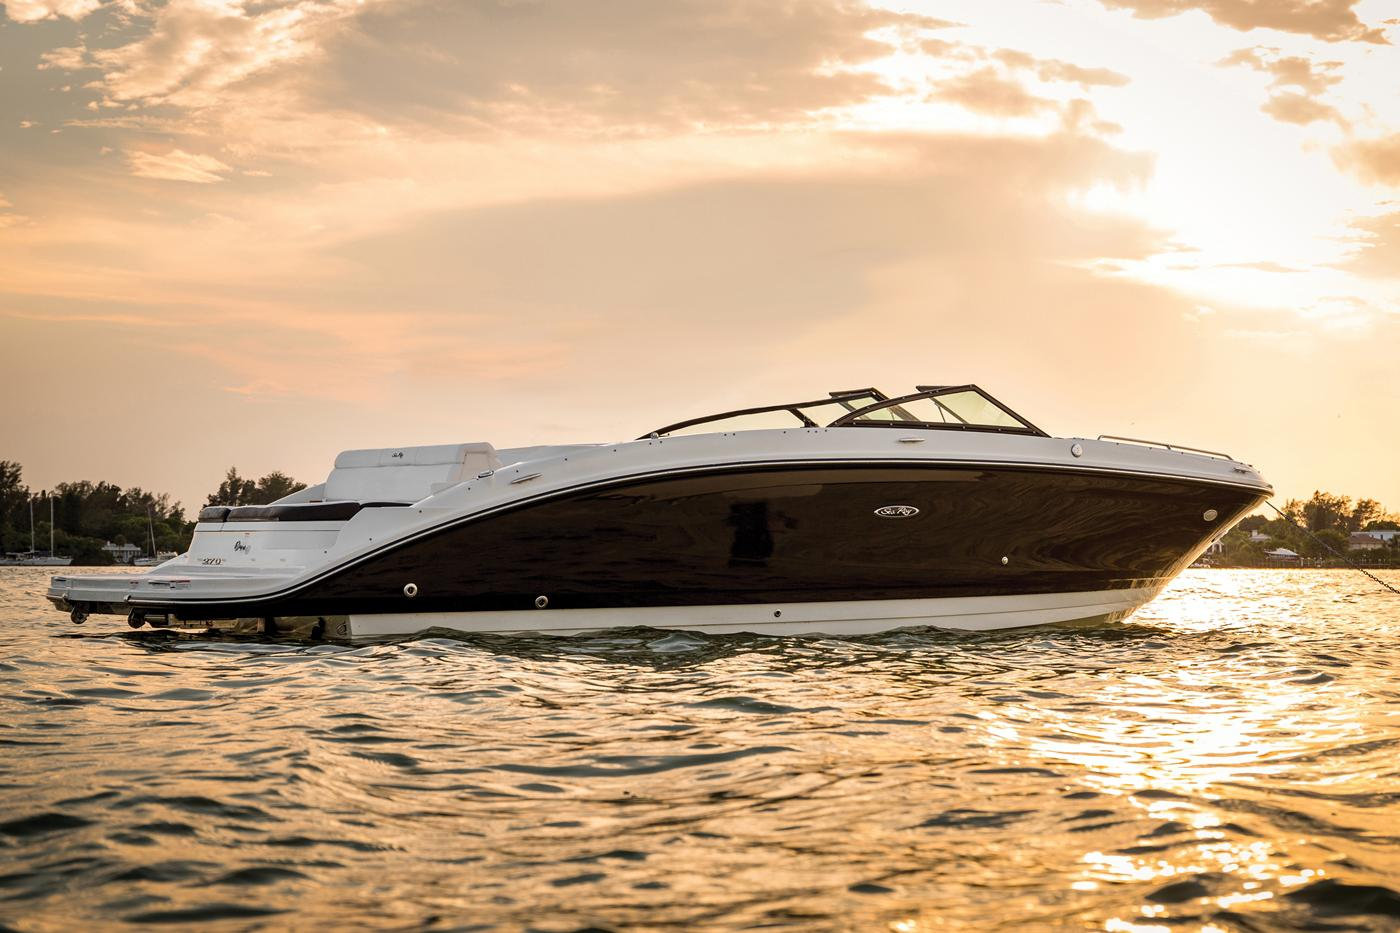 New 2019 Sea Ray 270 SDX - Hutchinson's Boat Works